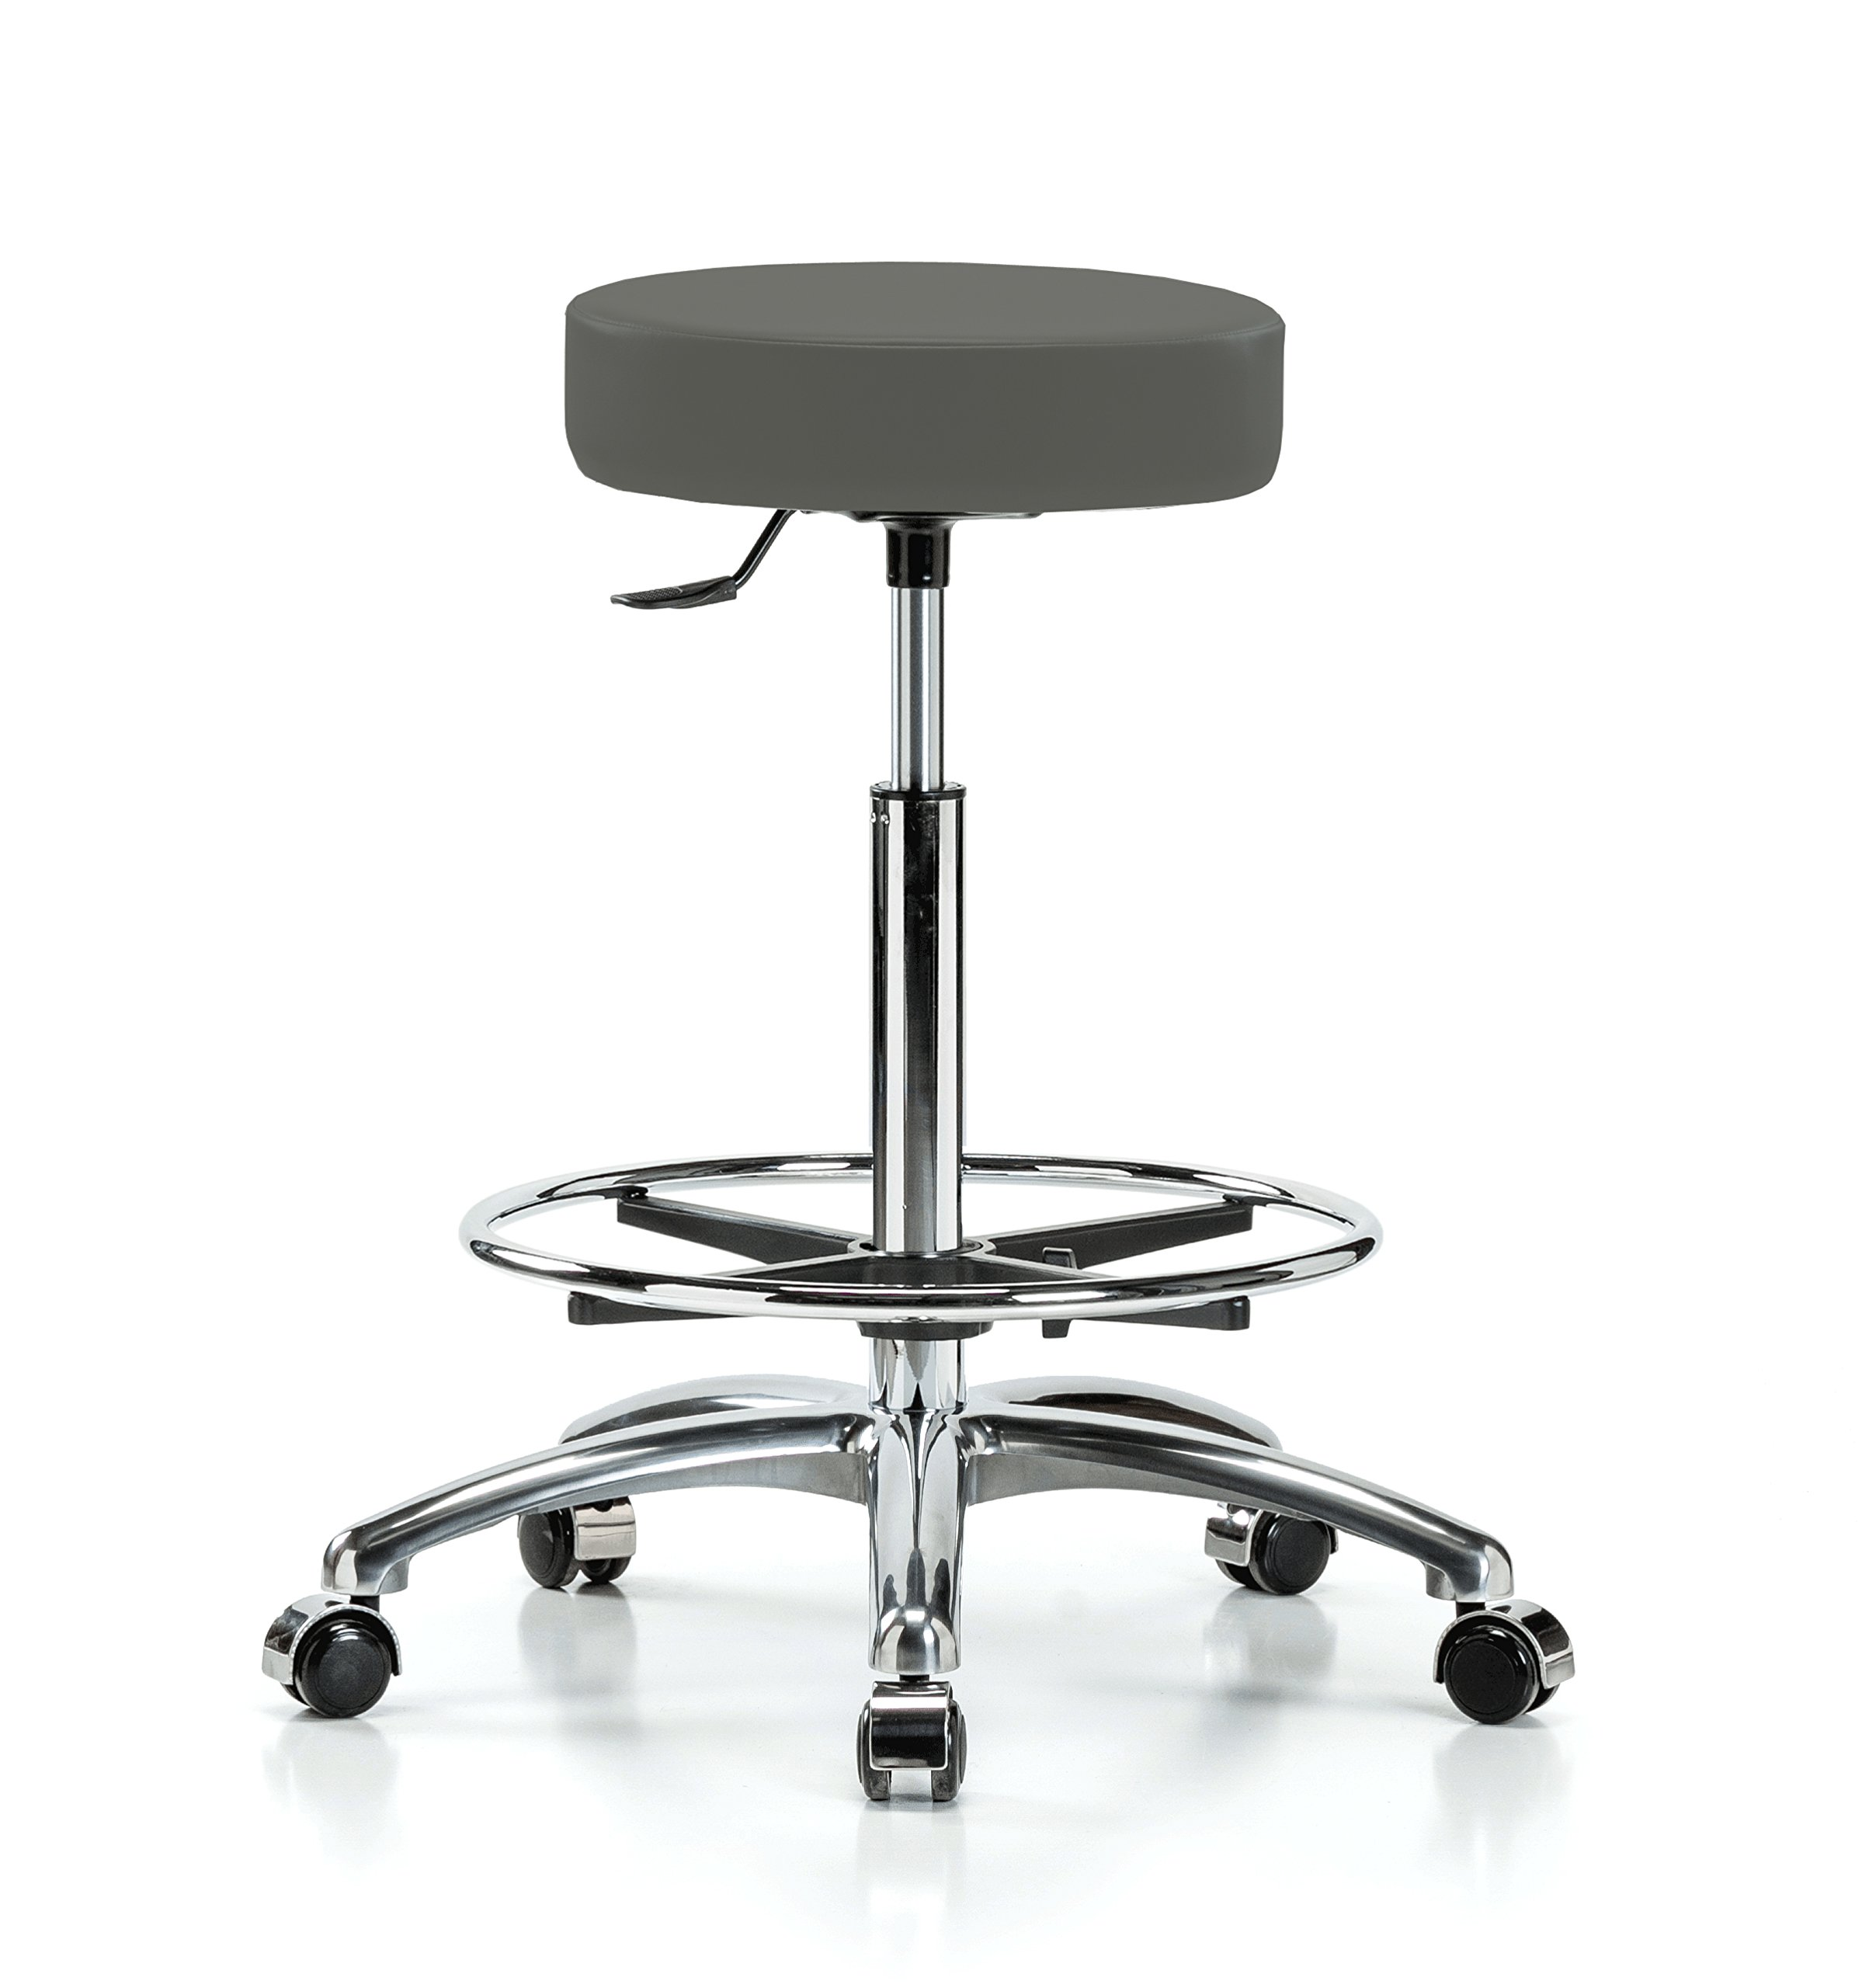 Perch Single Lever Adjustable Rolling Backless Swivel Stool in Chrome with Footring for Office Salon Home Garage or Work Shop 24'' - 34'' (Soft Floor Casters/Charcoal Vinyl)